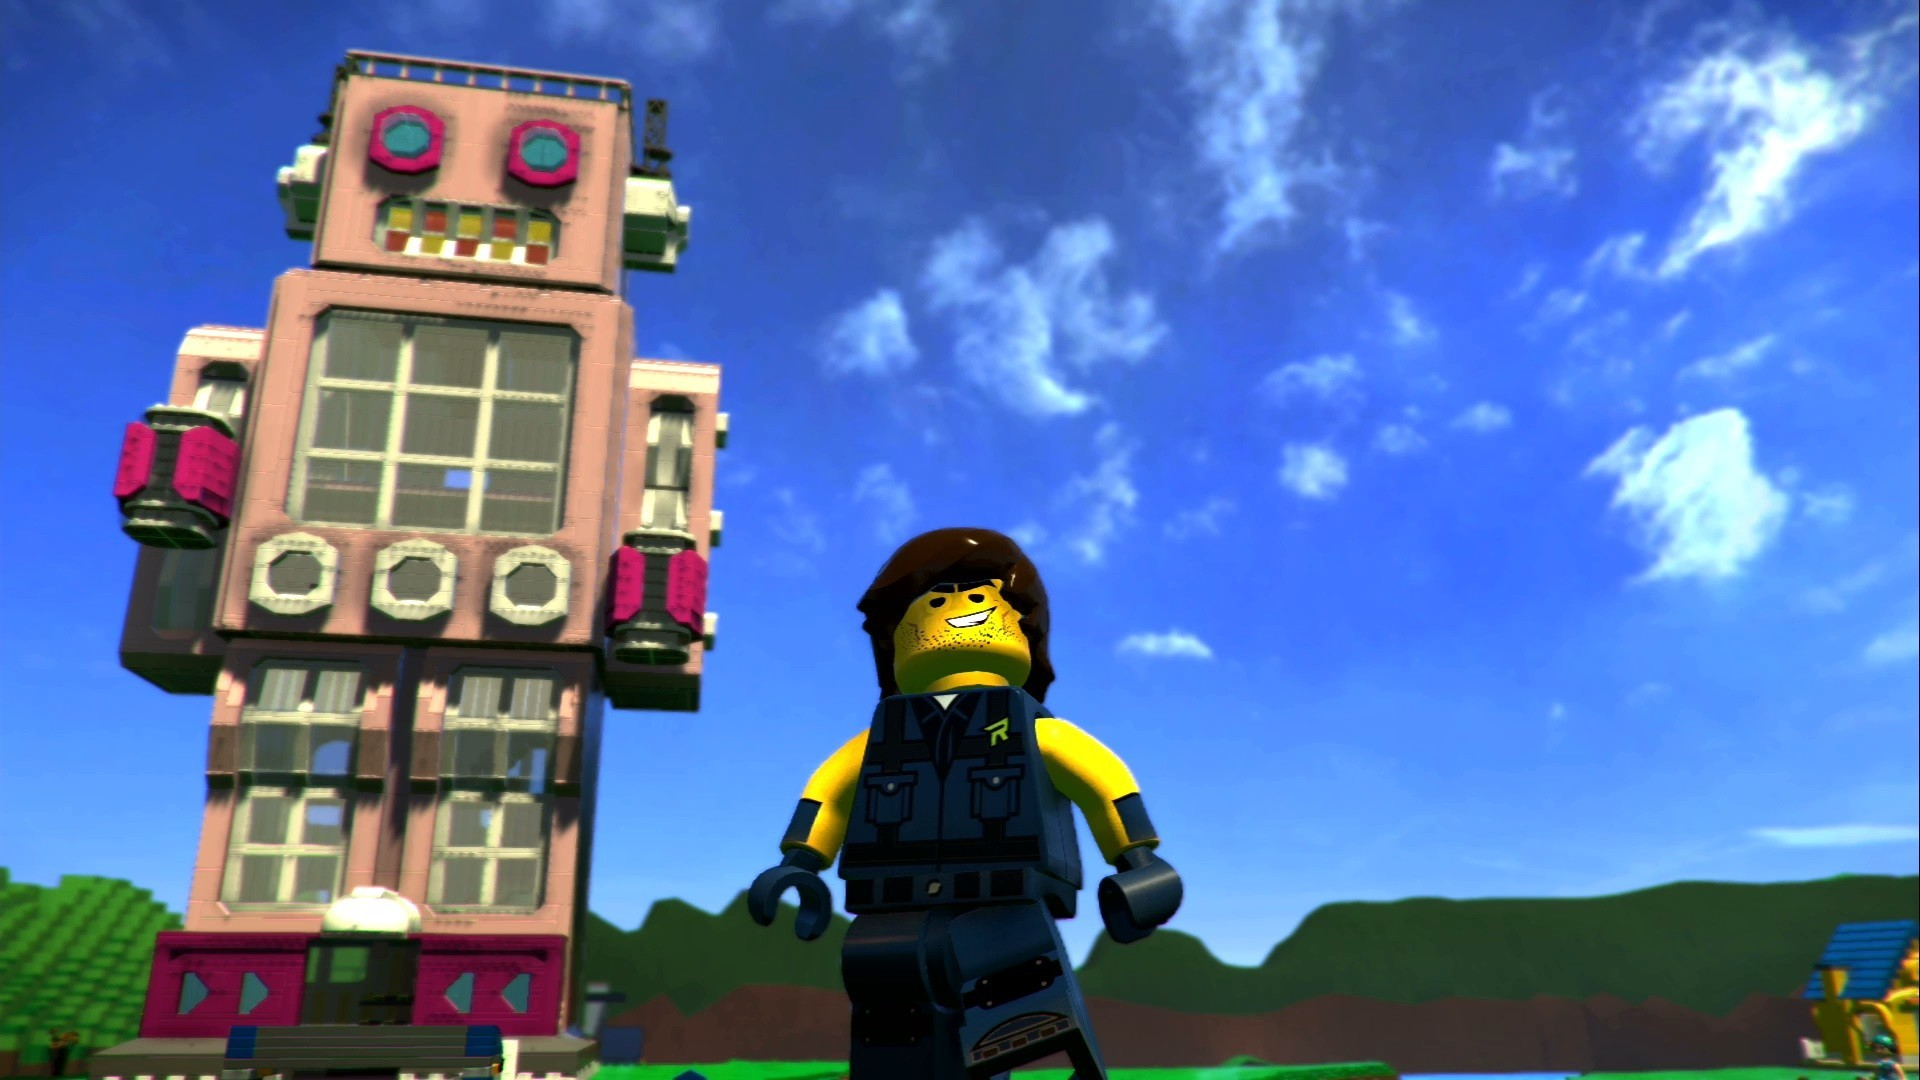 The Lego Movie 2 - Videogame